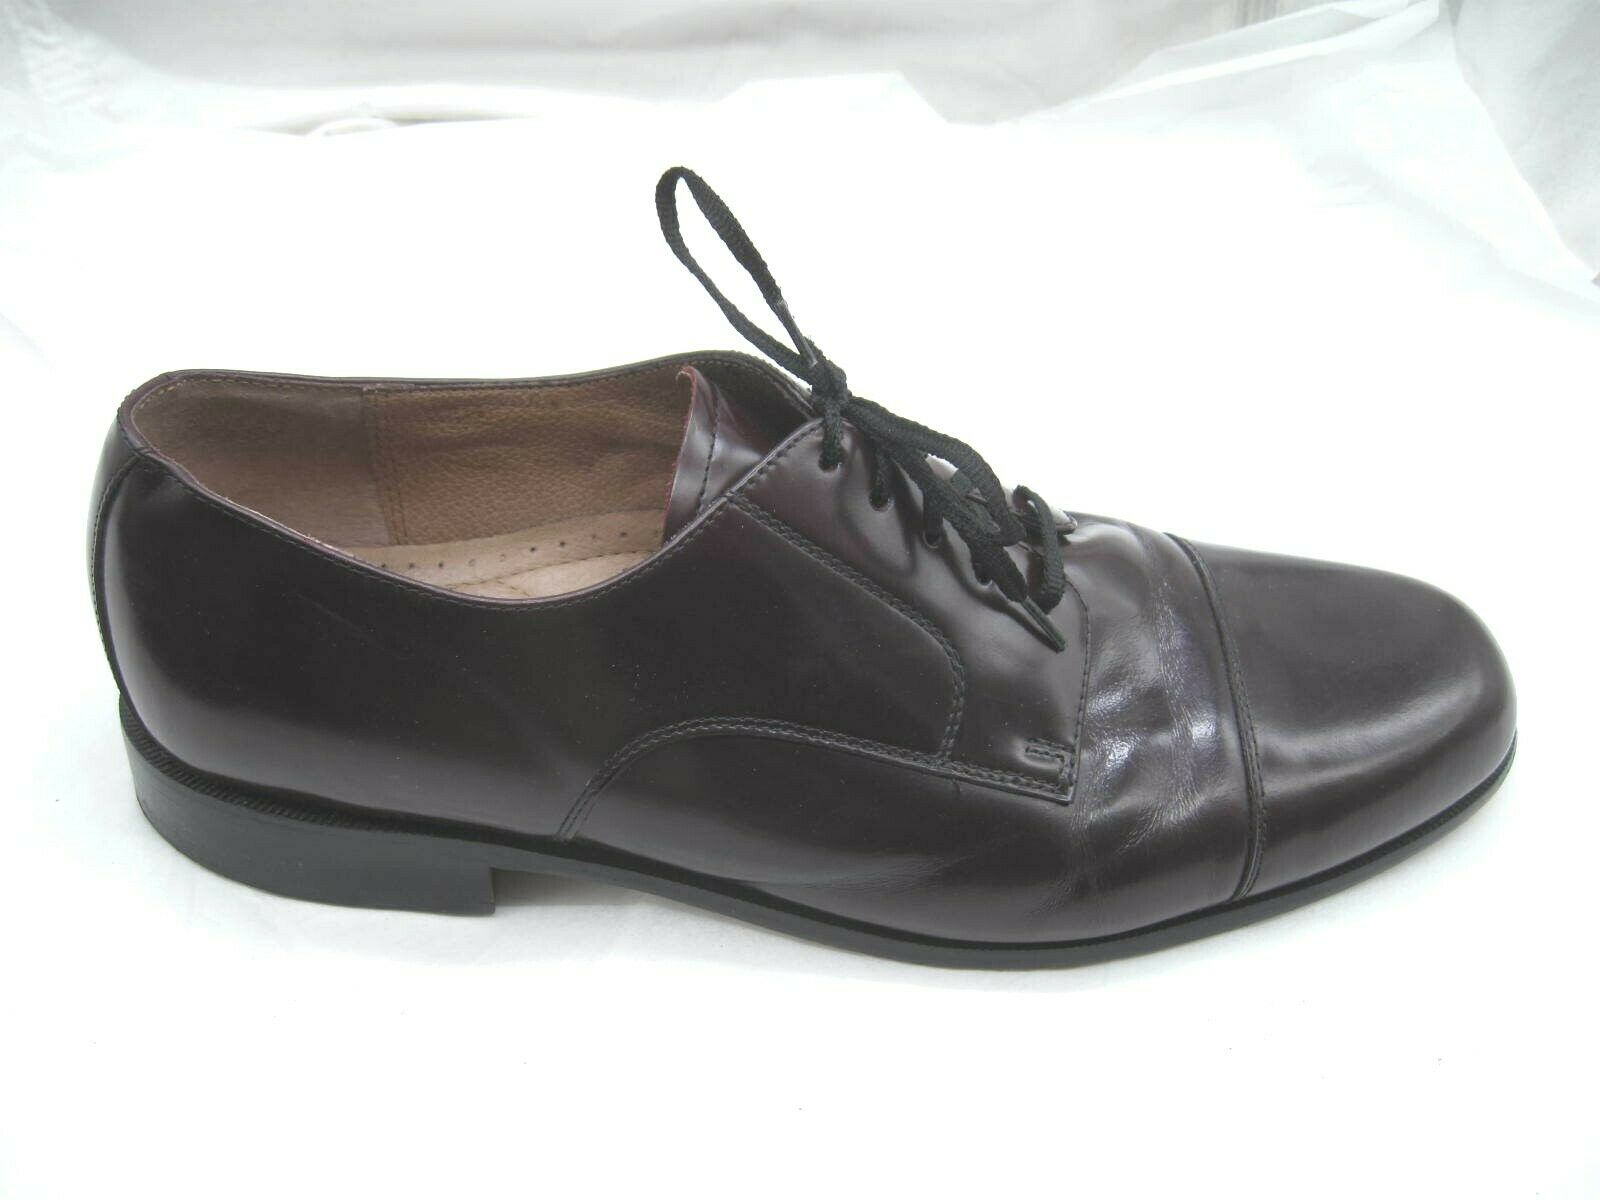 Bostonian Classics Burgundy maroon oxfords Mens dress captoe shoes 45 12M 20398